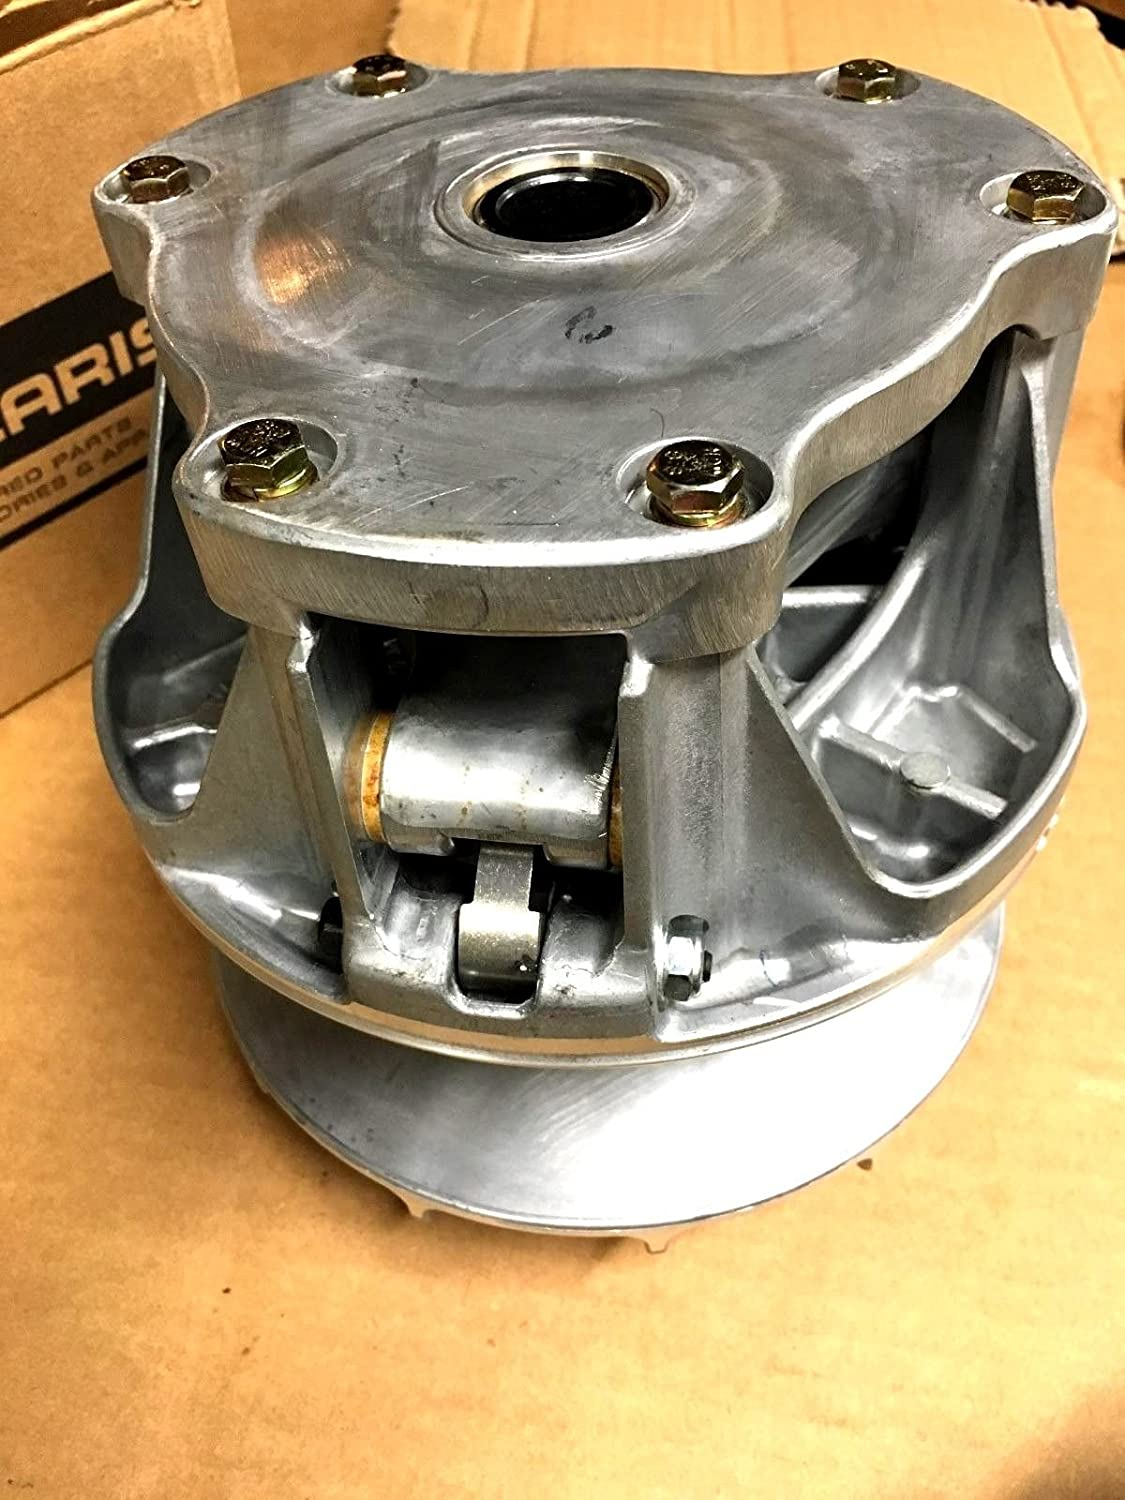 CPWtm 10-14 Polaris RZR 800 S Clutch - Bargain sale New Drive SEAL limited product Primary